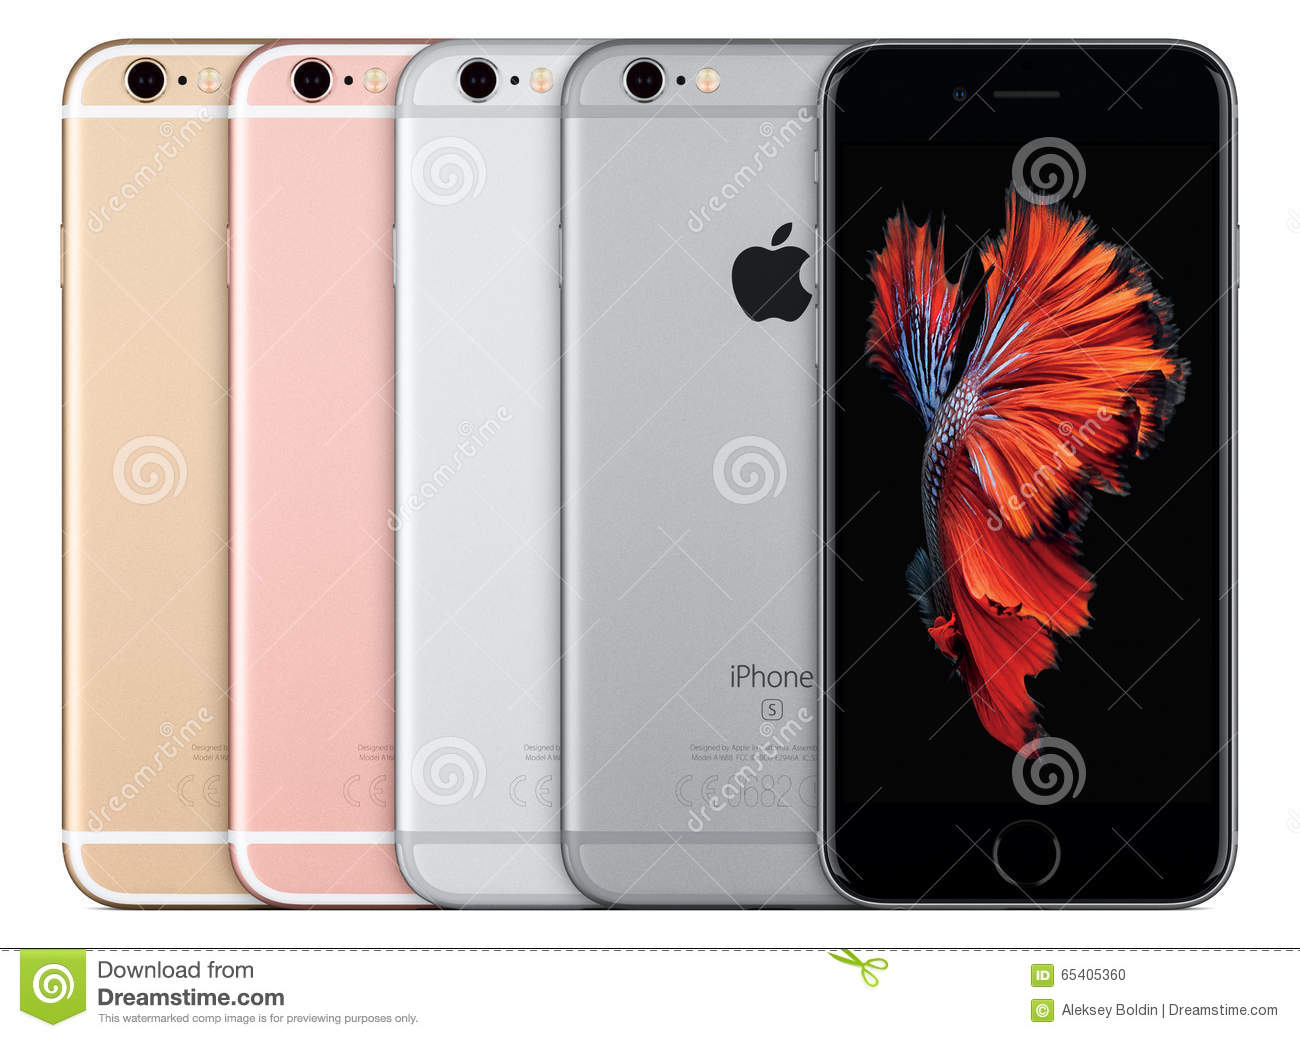 Apple Iphone 6s All Colors Silver Space Gray Gold And Rose Gold